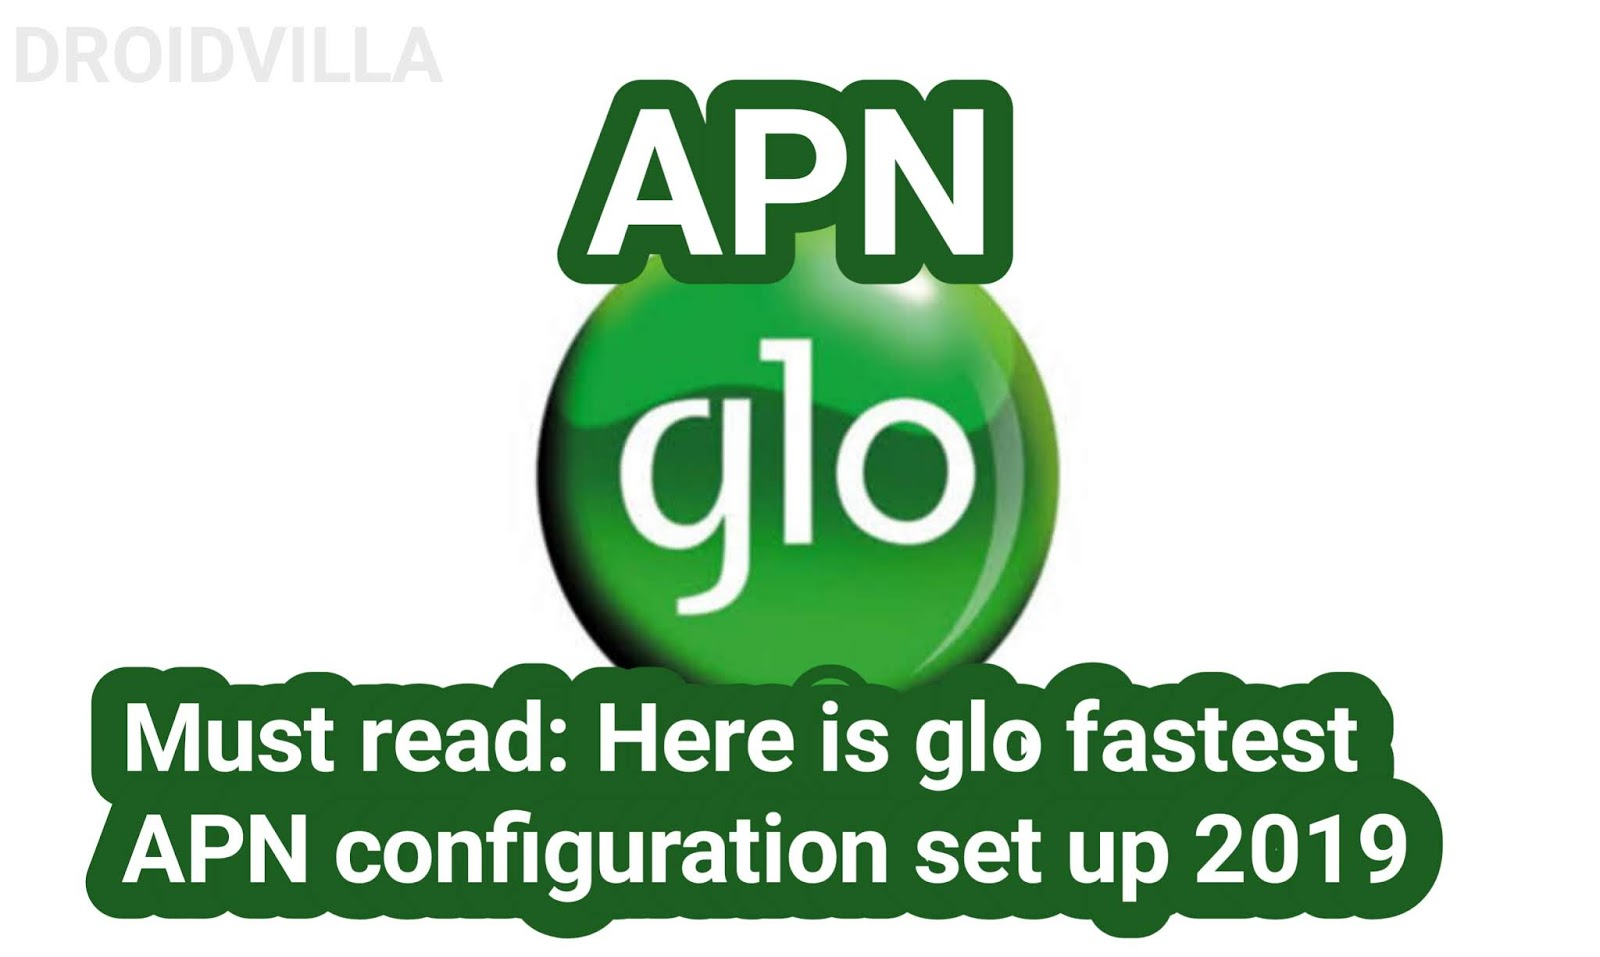 must-read-here-is-glo-fastest-apn-configuration-set-up-2020-droidvilla-tech